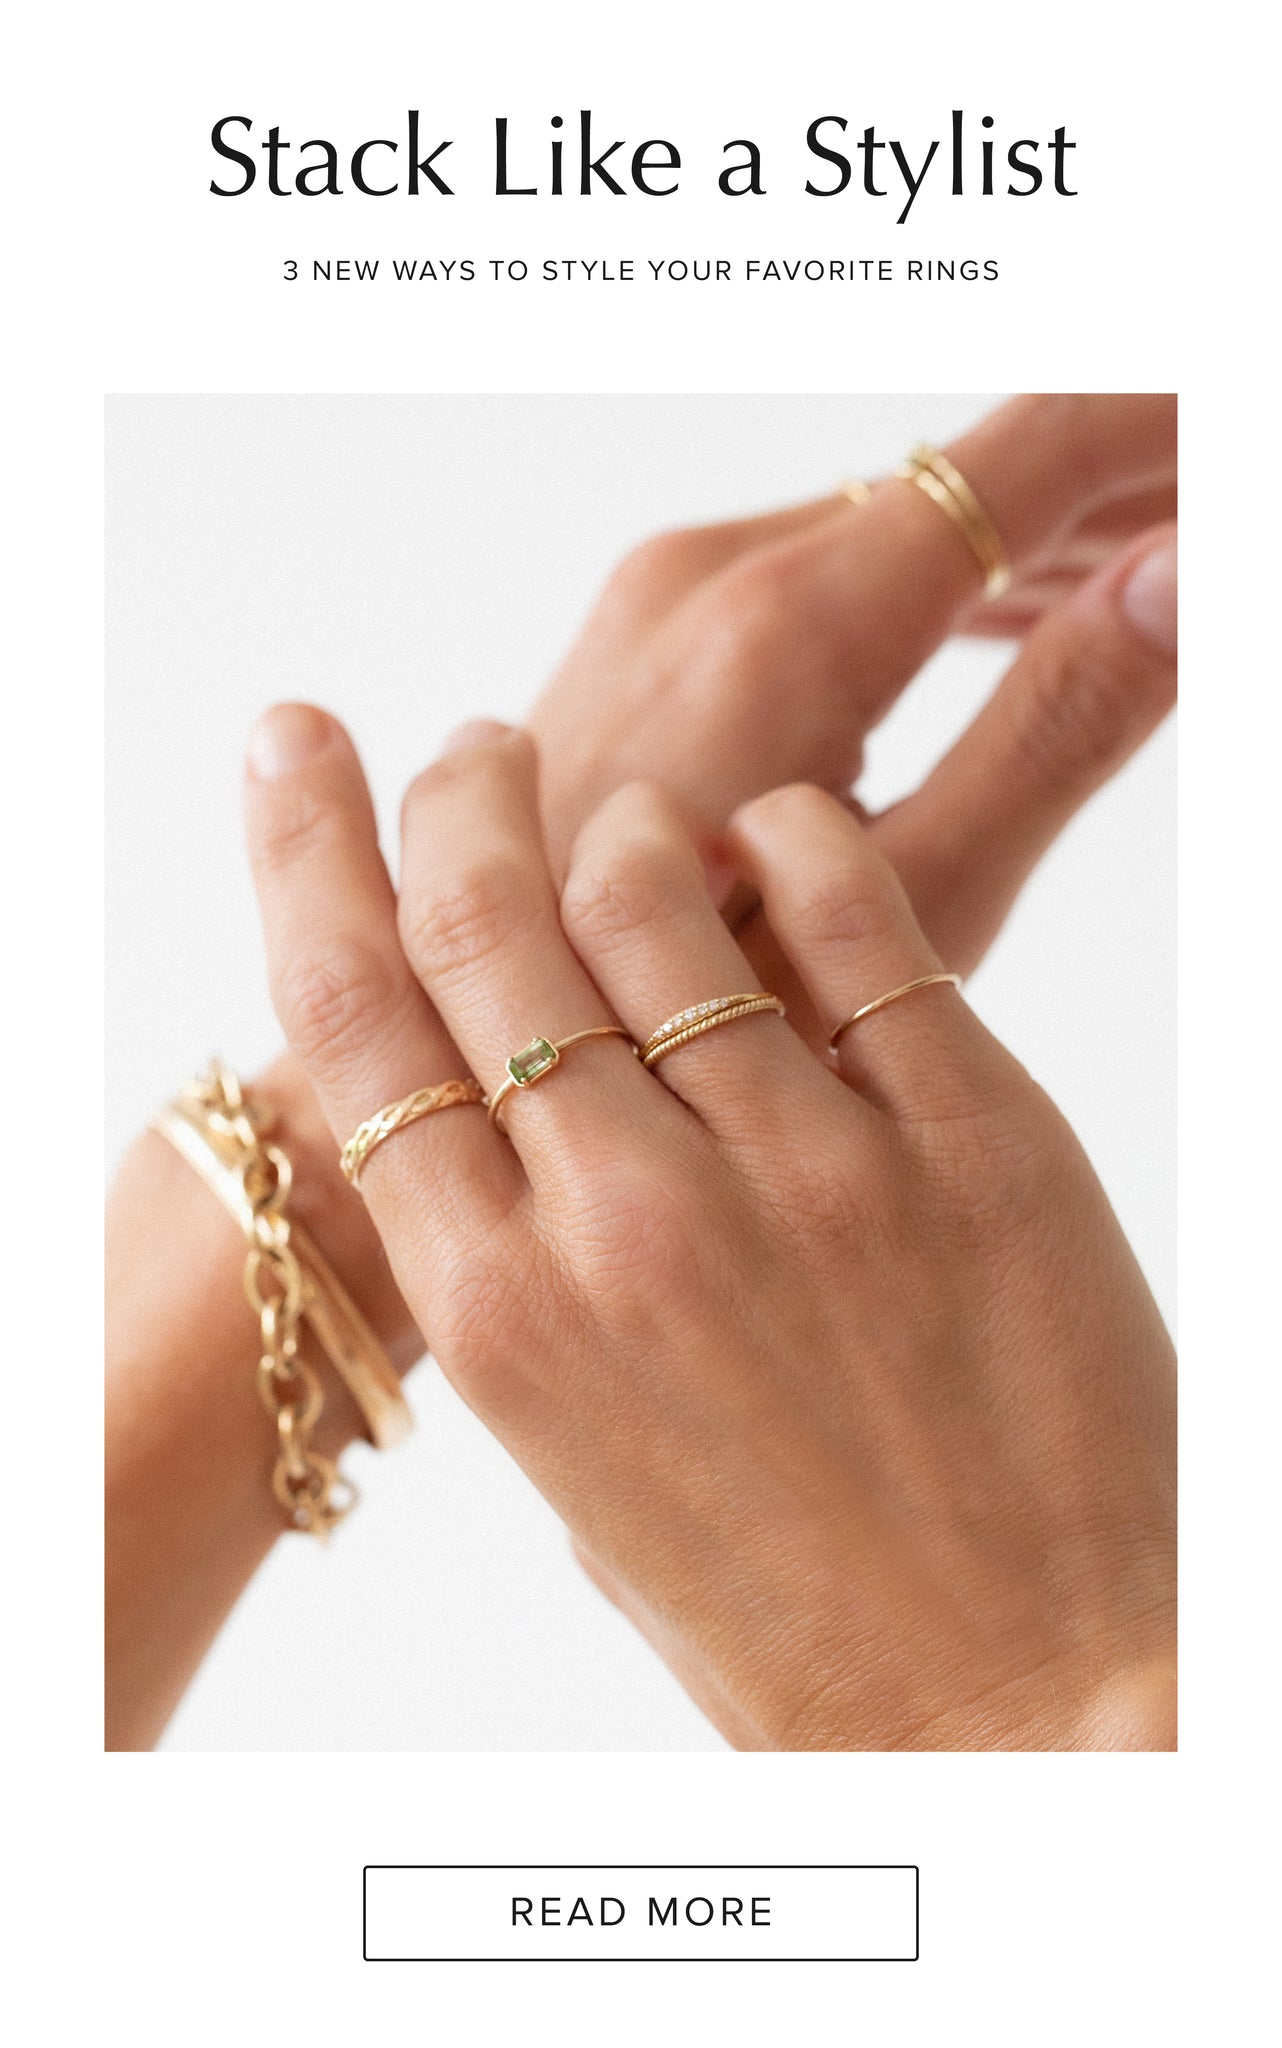 Stack Like a Stylist: 3 new ways to style your favorite rings!